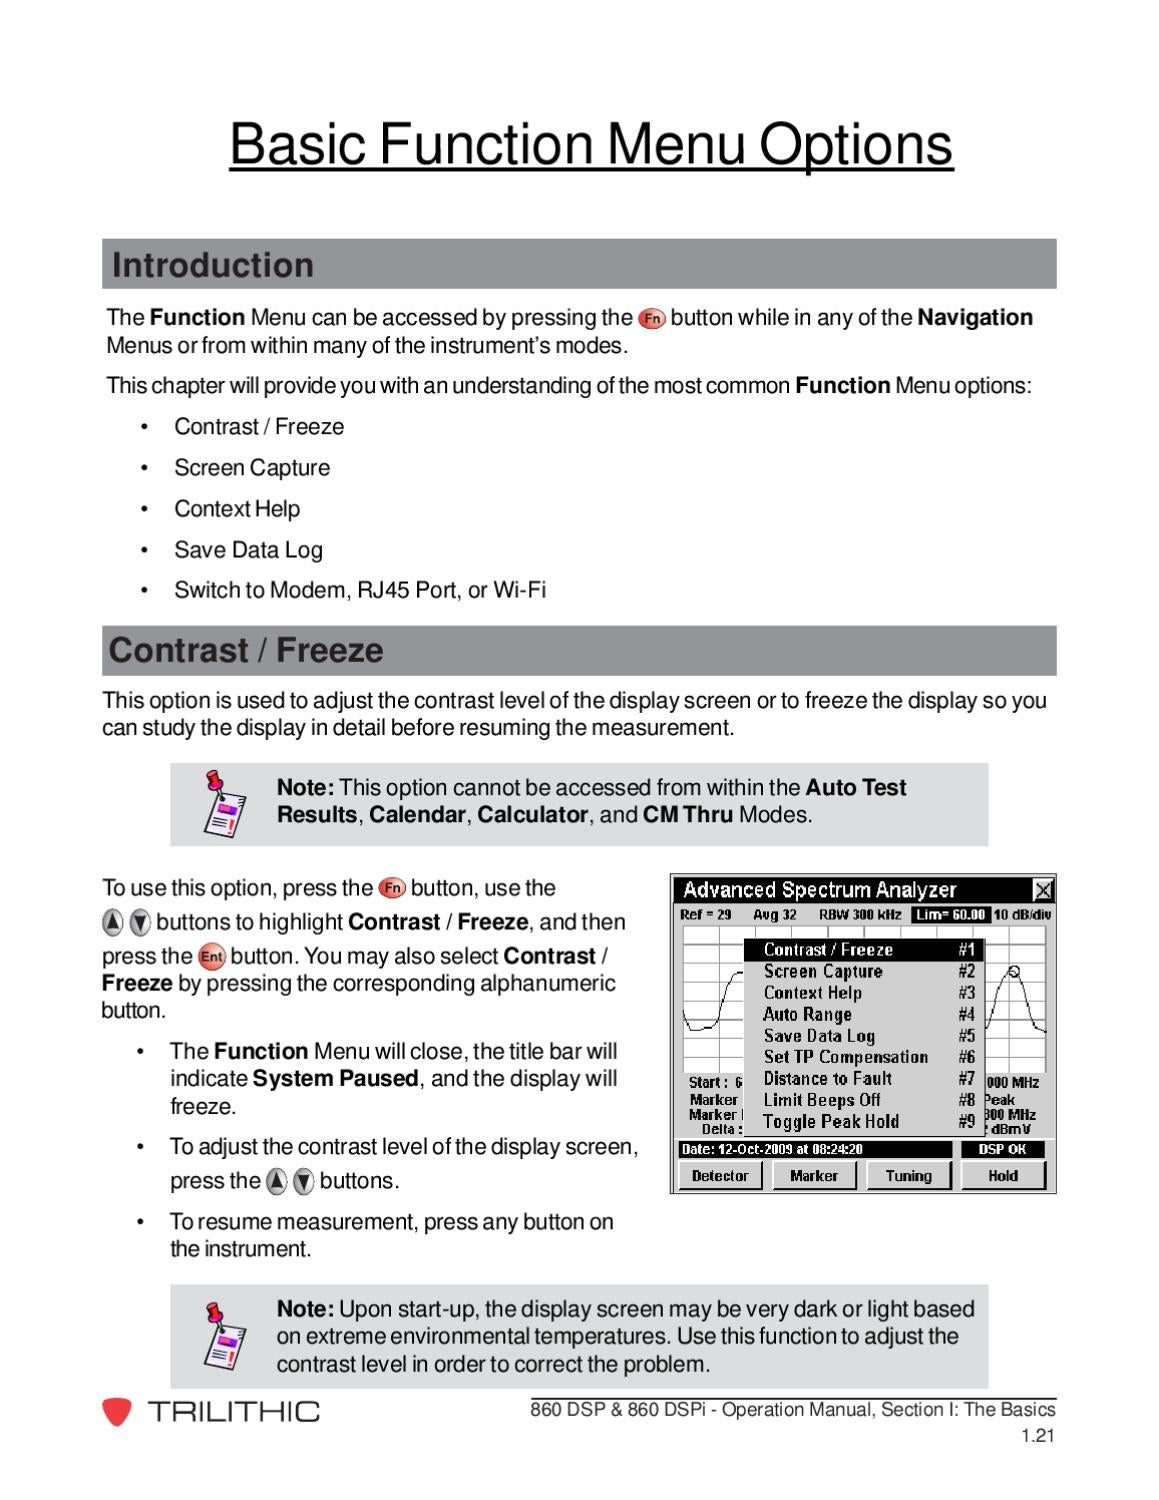 860 DSPi Manual: Section 1, Chapter 6 by Trilithic, Inc - issuu